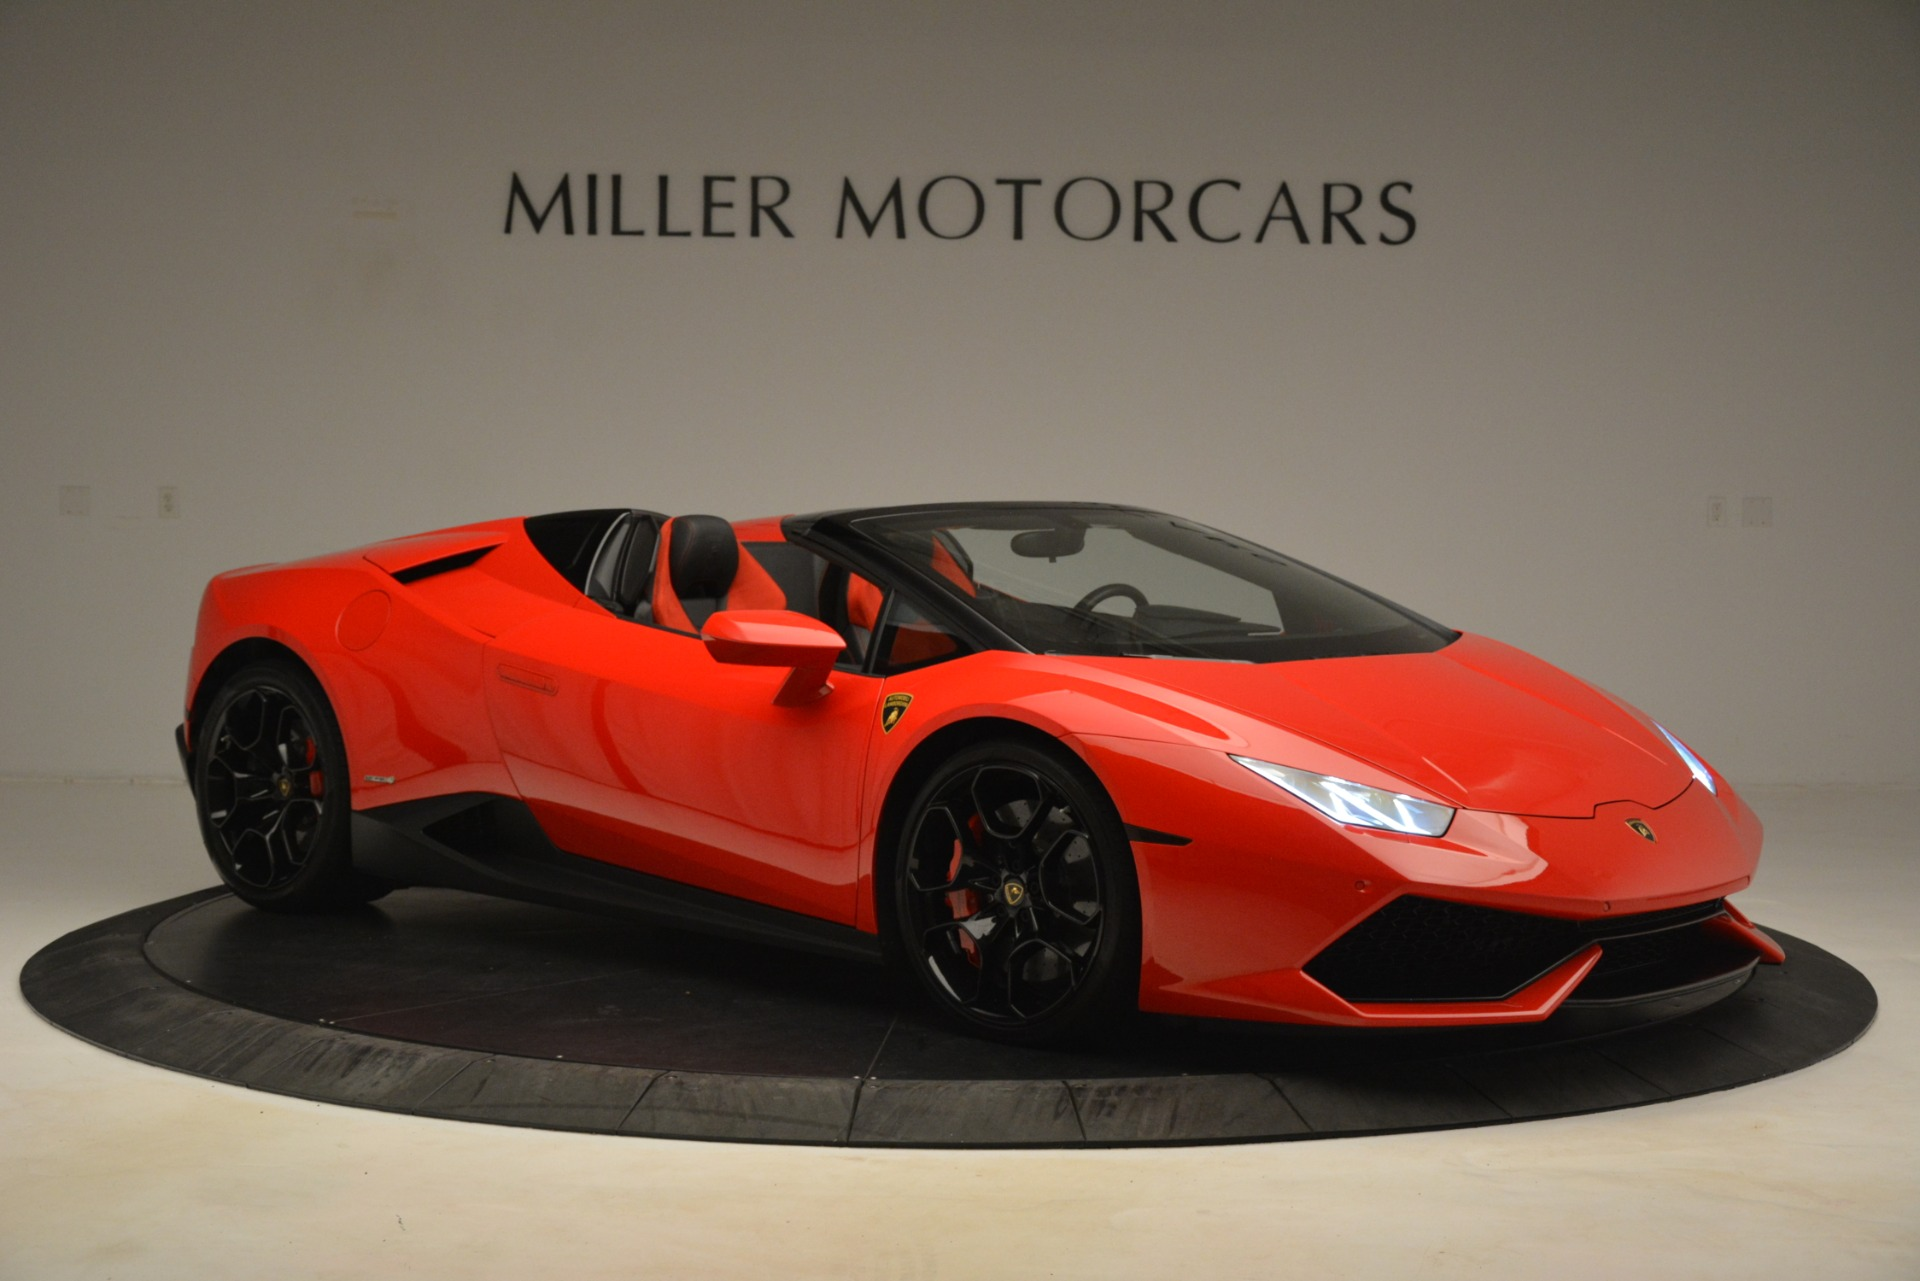 Used 2017 Lamborghini Huracan LP 610-4 Spyder For Sale In Greenwich, CT. Alfa Romeo of Greenwich, 7597 3270_p7